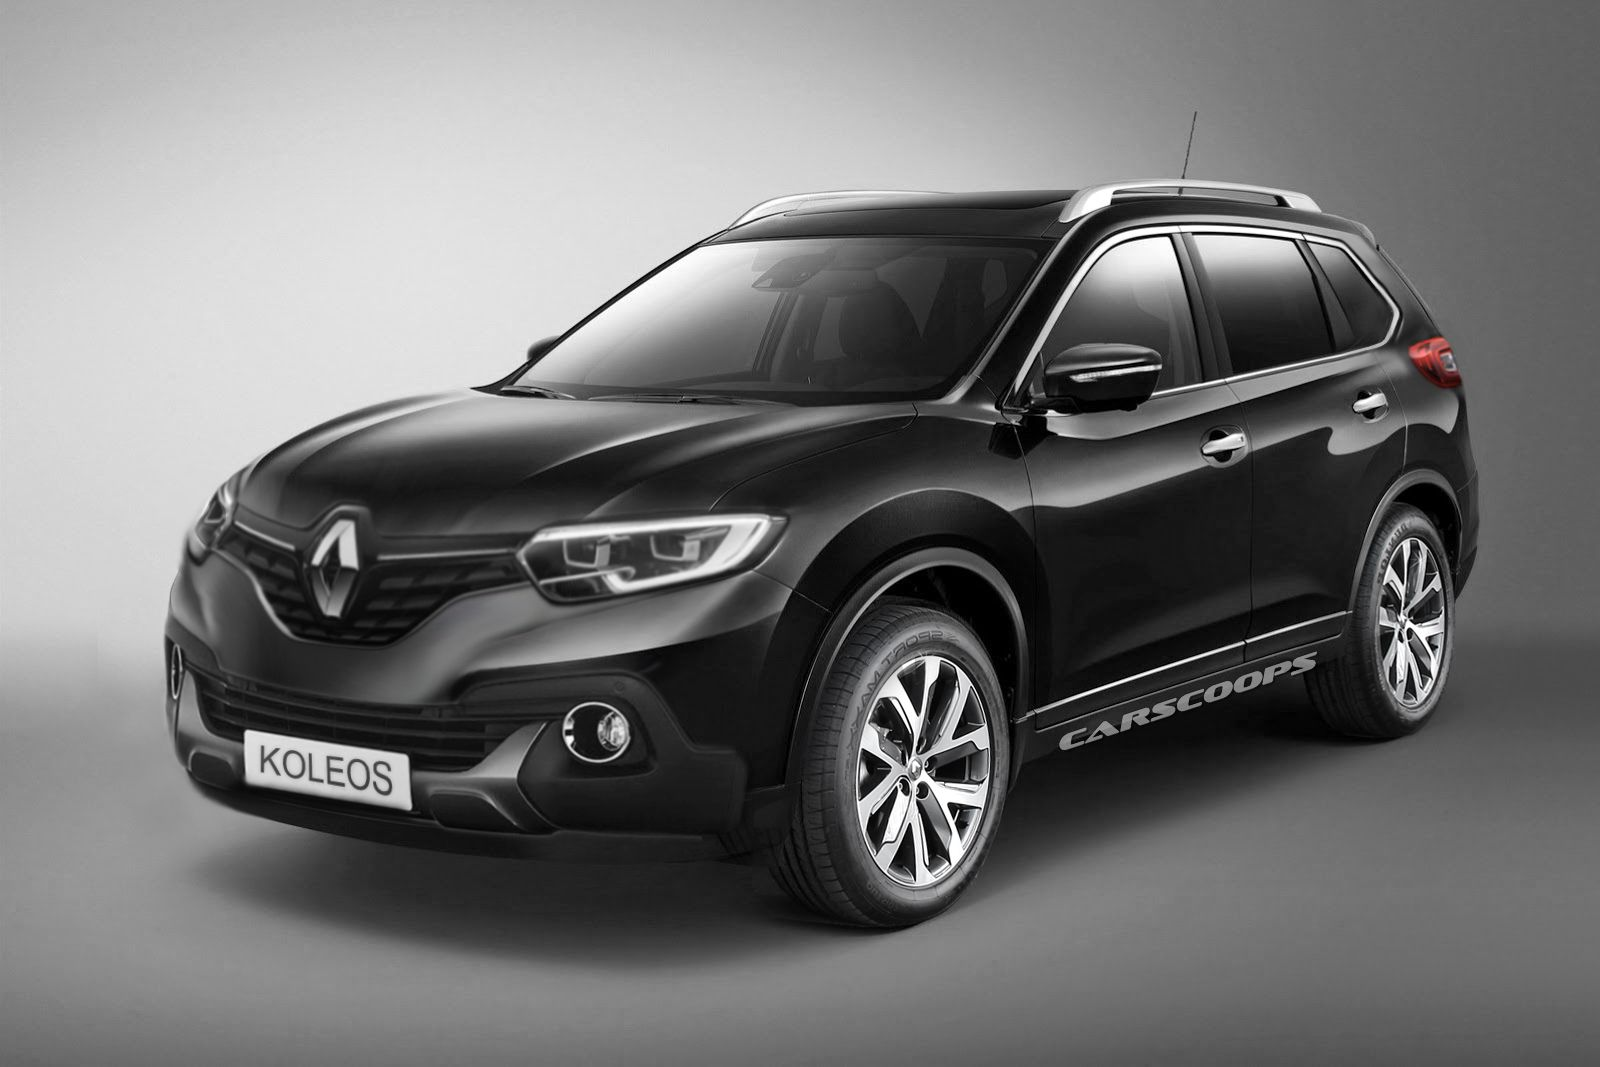 renault koleos 2017 atelier - photo #16